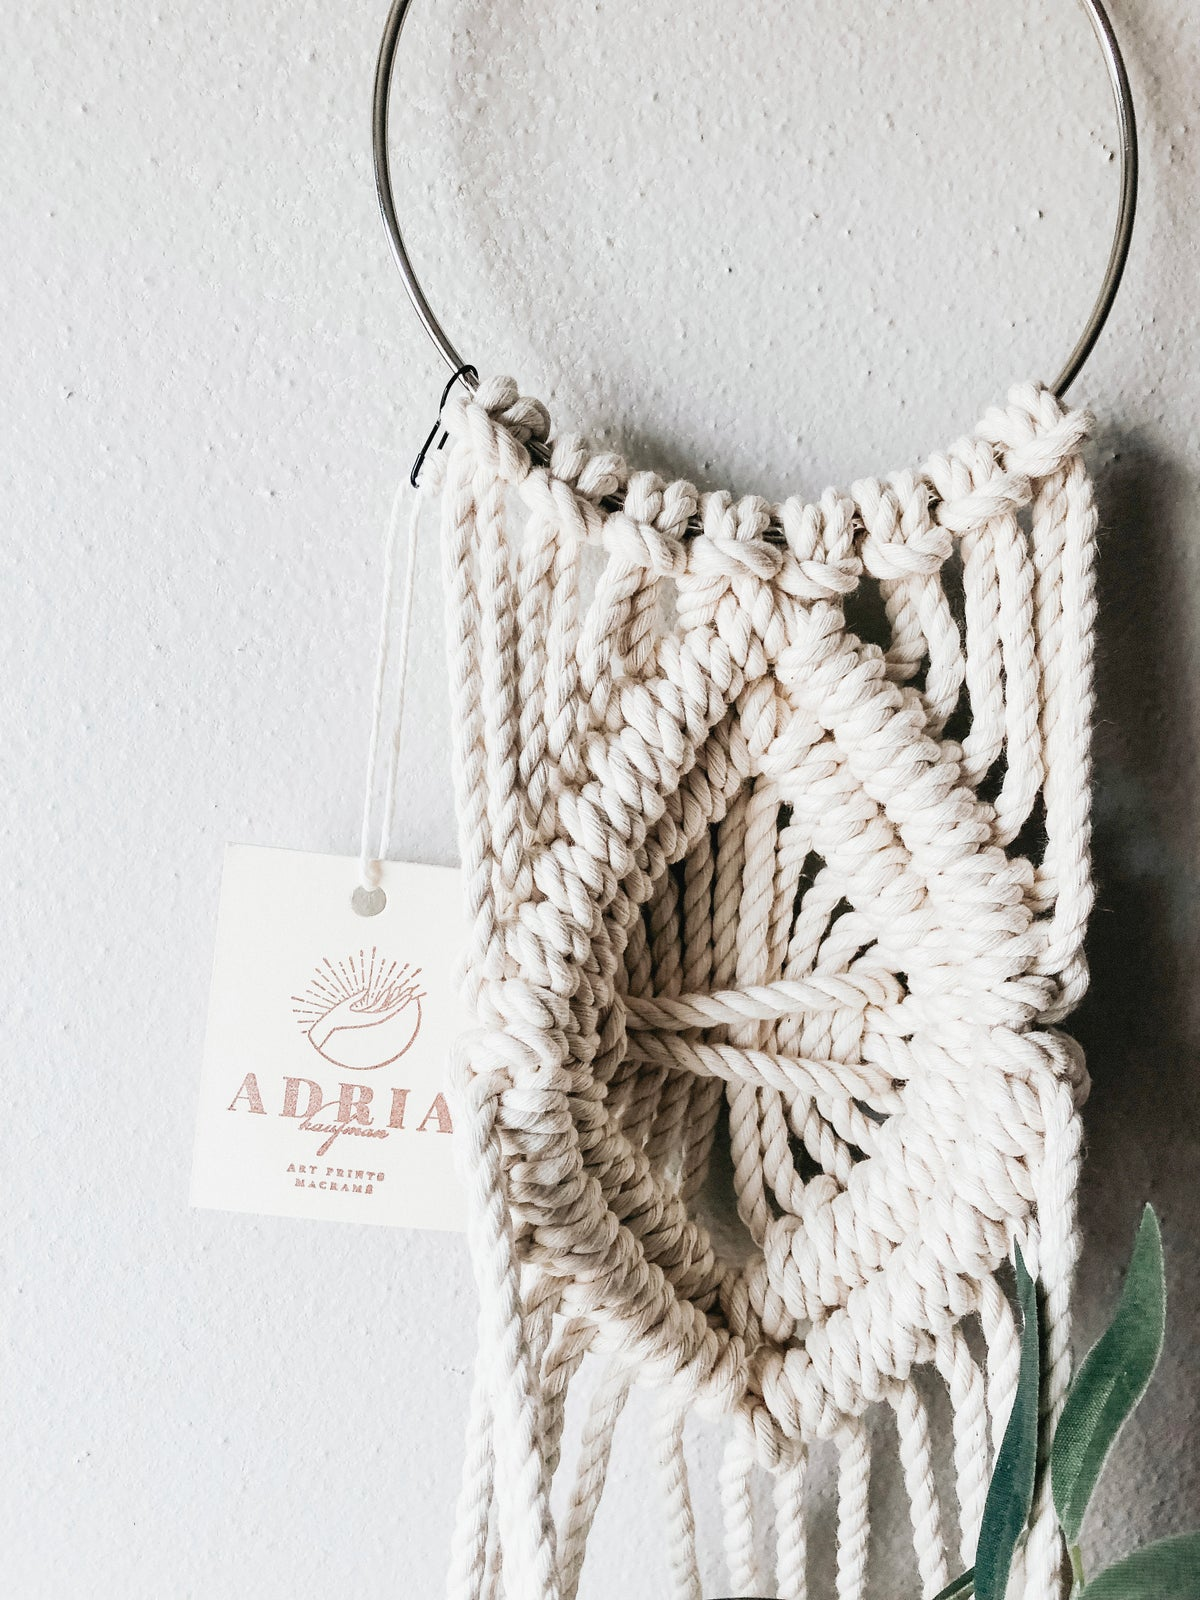 Image of Single Square Knot Macramé Plant Hanger